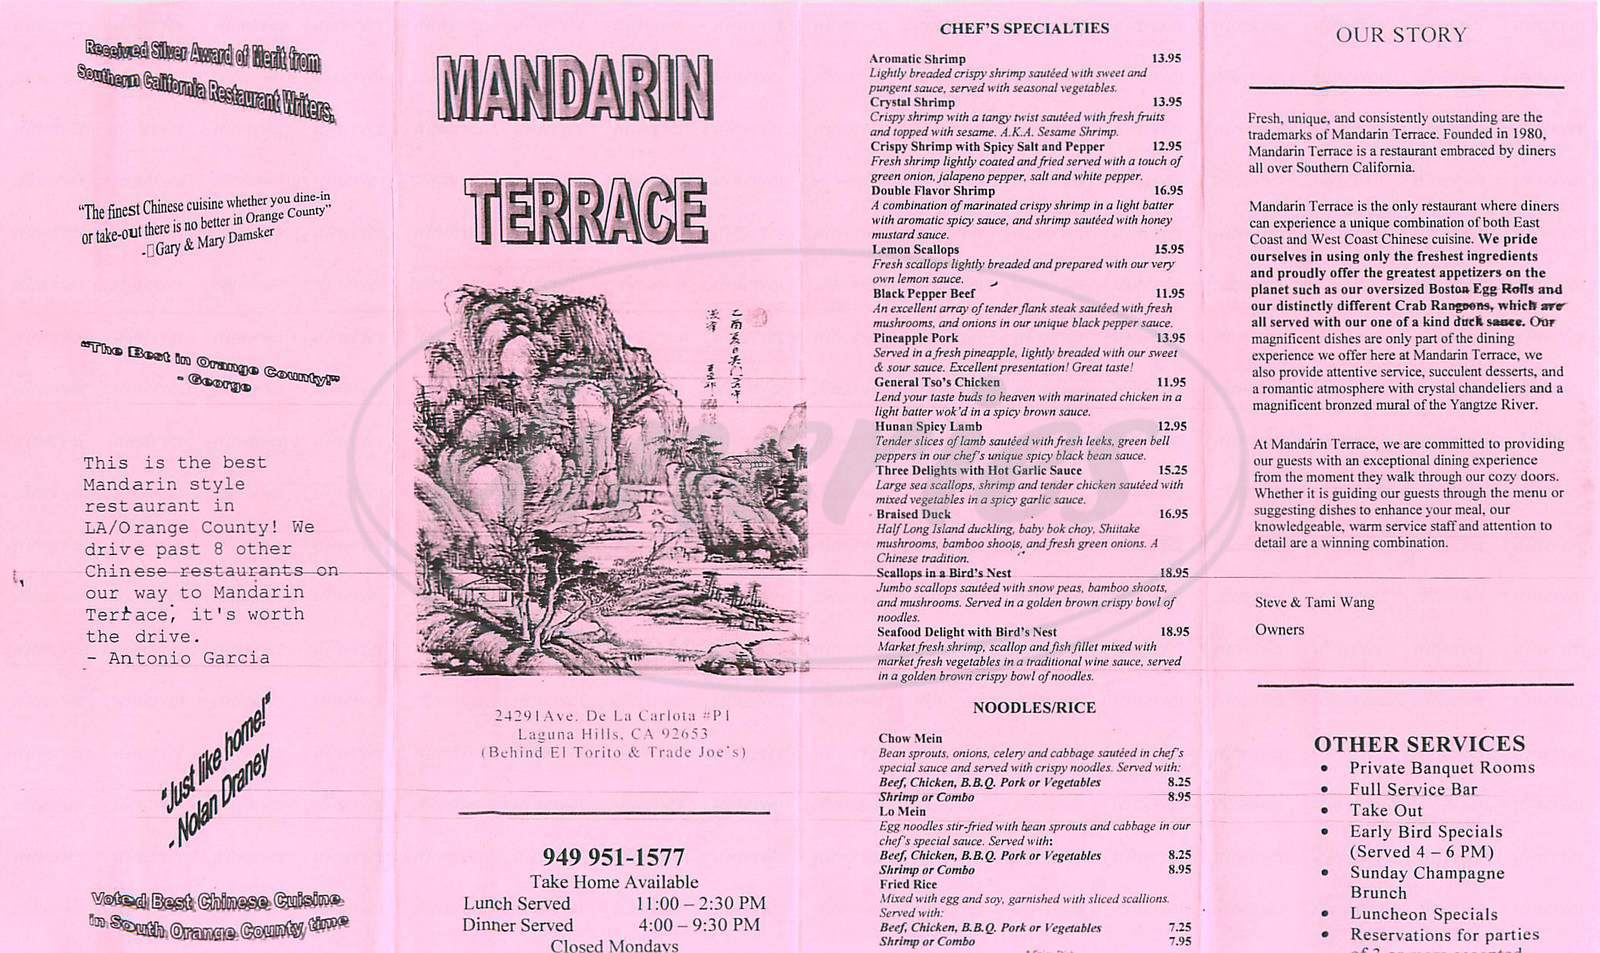 menu for Mandarin Terrace